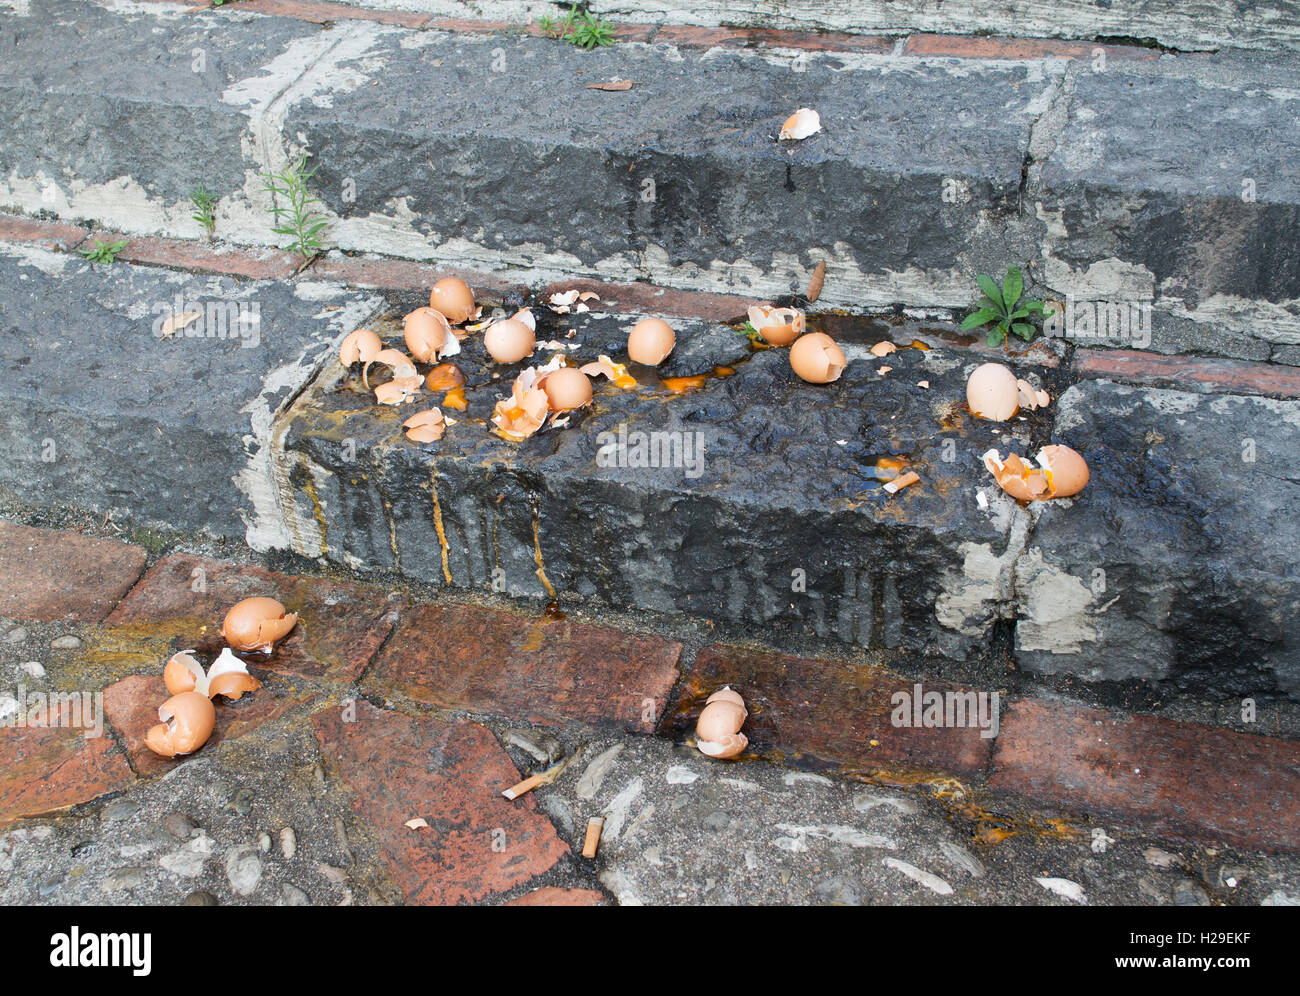 broken-eggs-on-steps-H29EKF.jpg